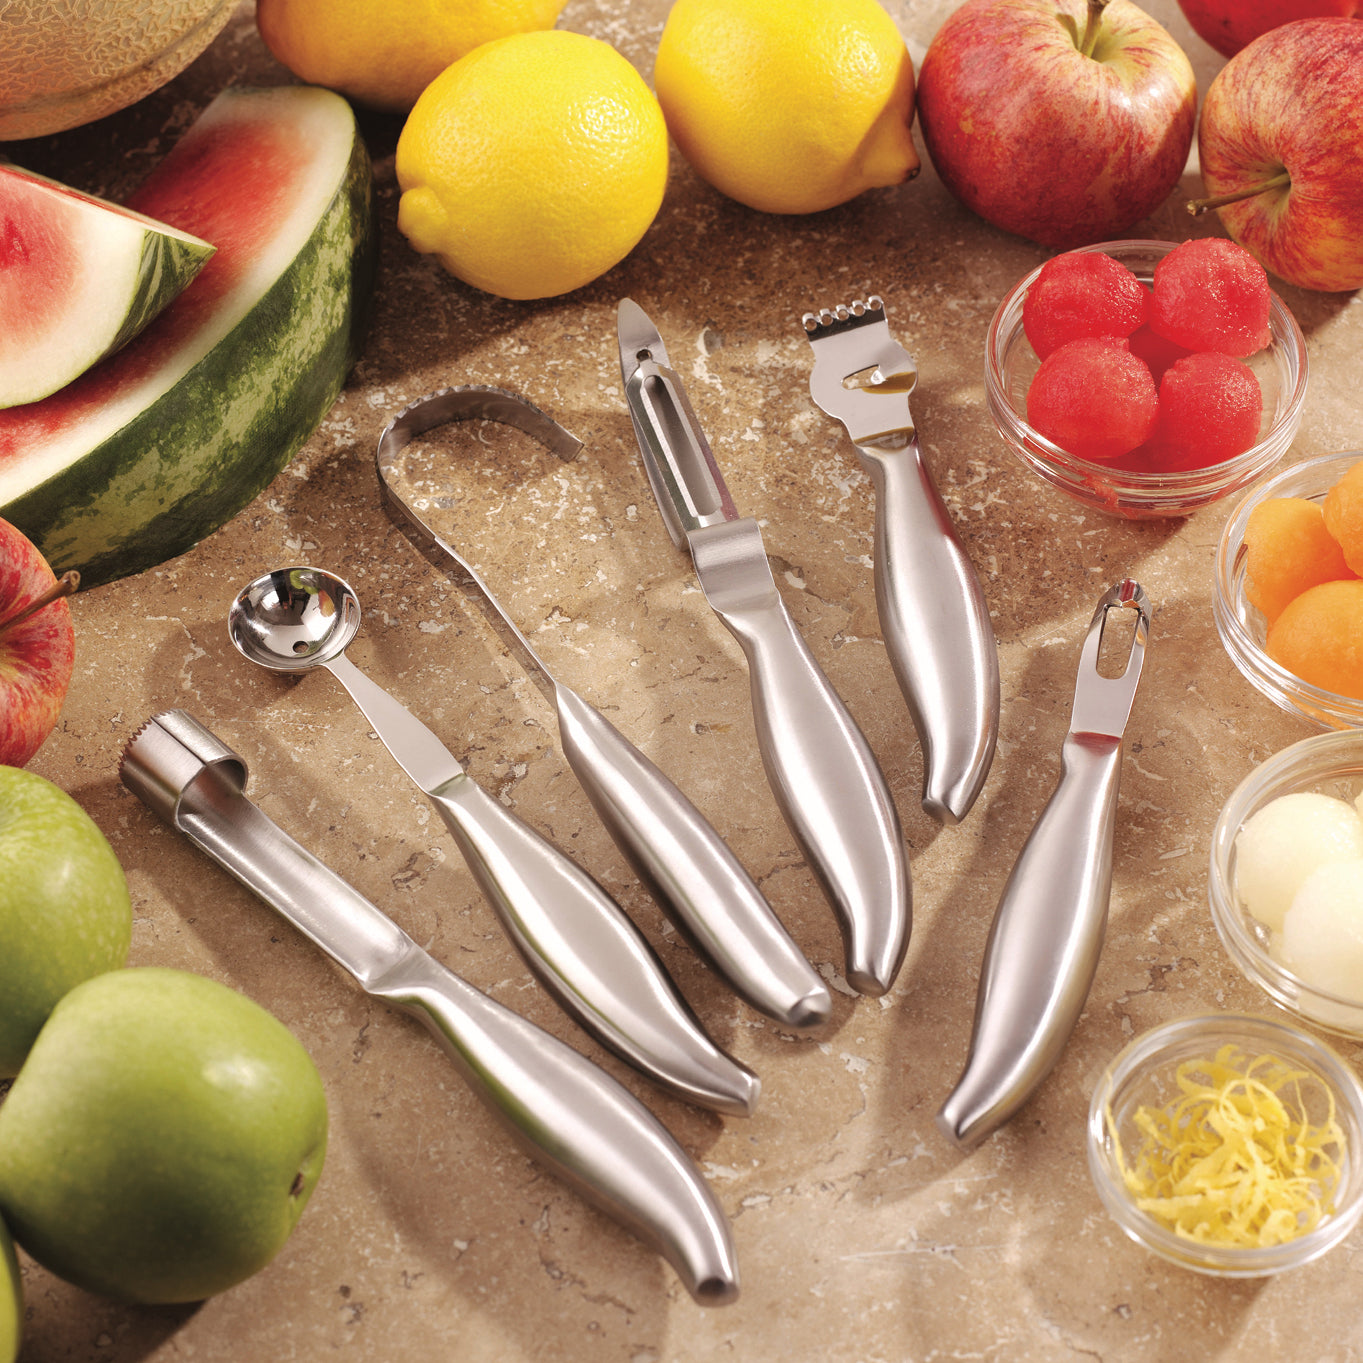 Stainless Steel Kitchen Utensils Set for Garnishing